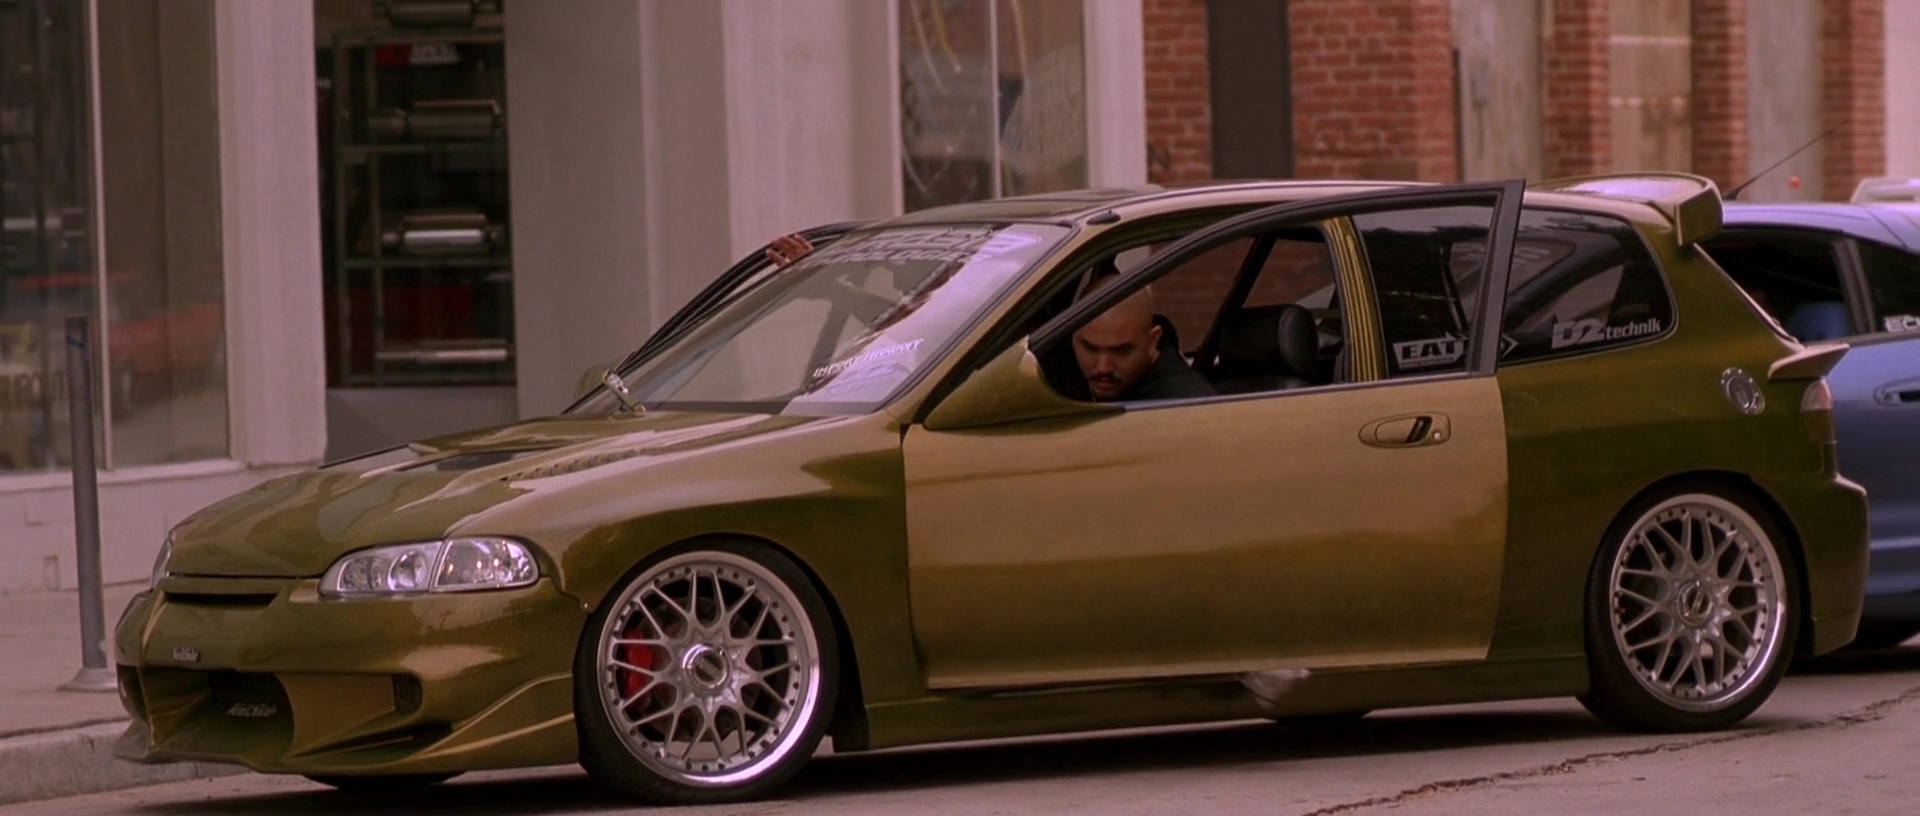 Image - Hector's Honda Civic.jpg | The Fast and the Furious Wiki ...